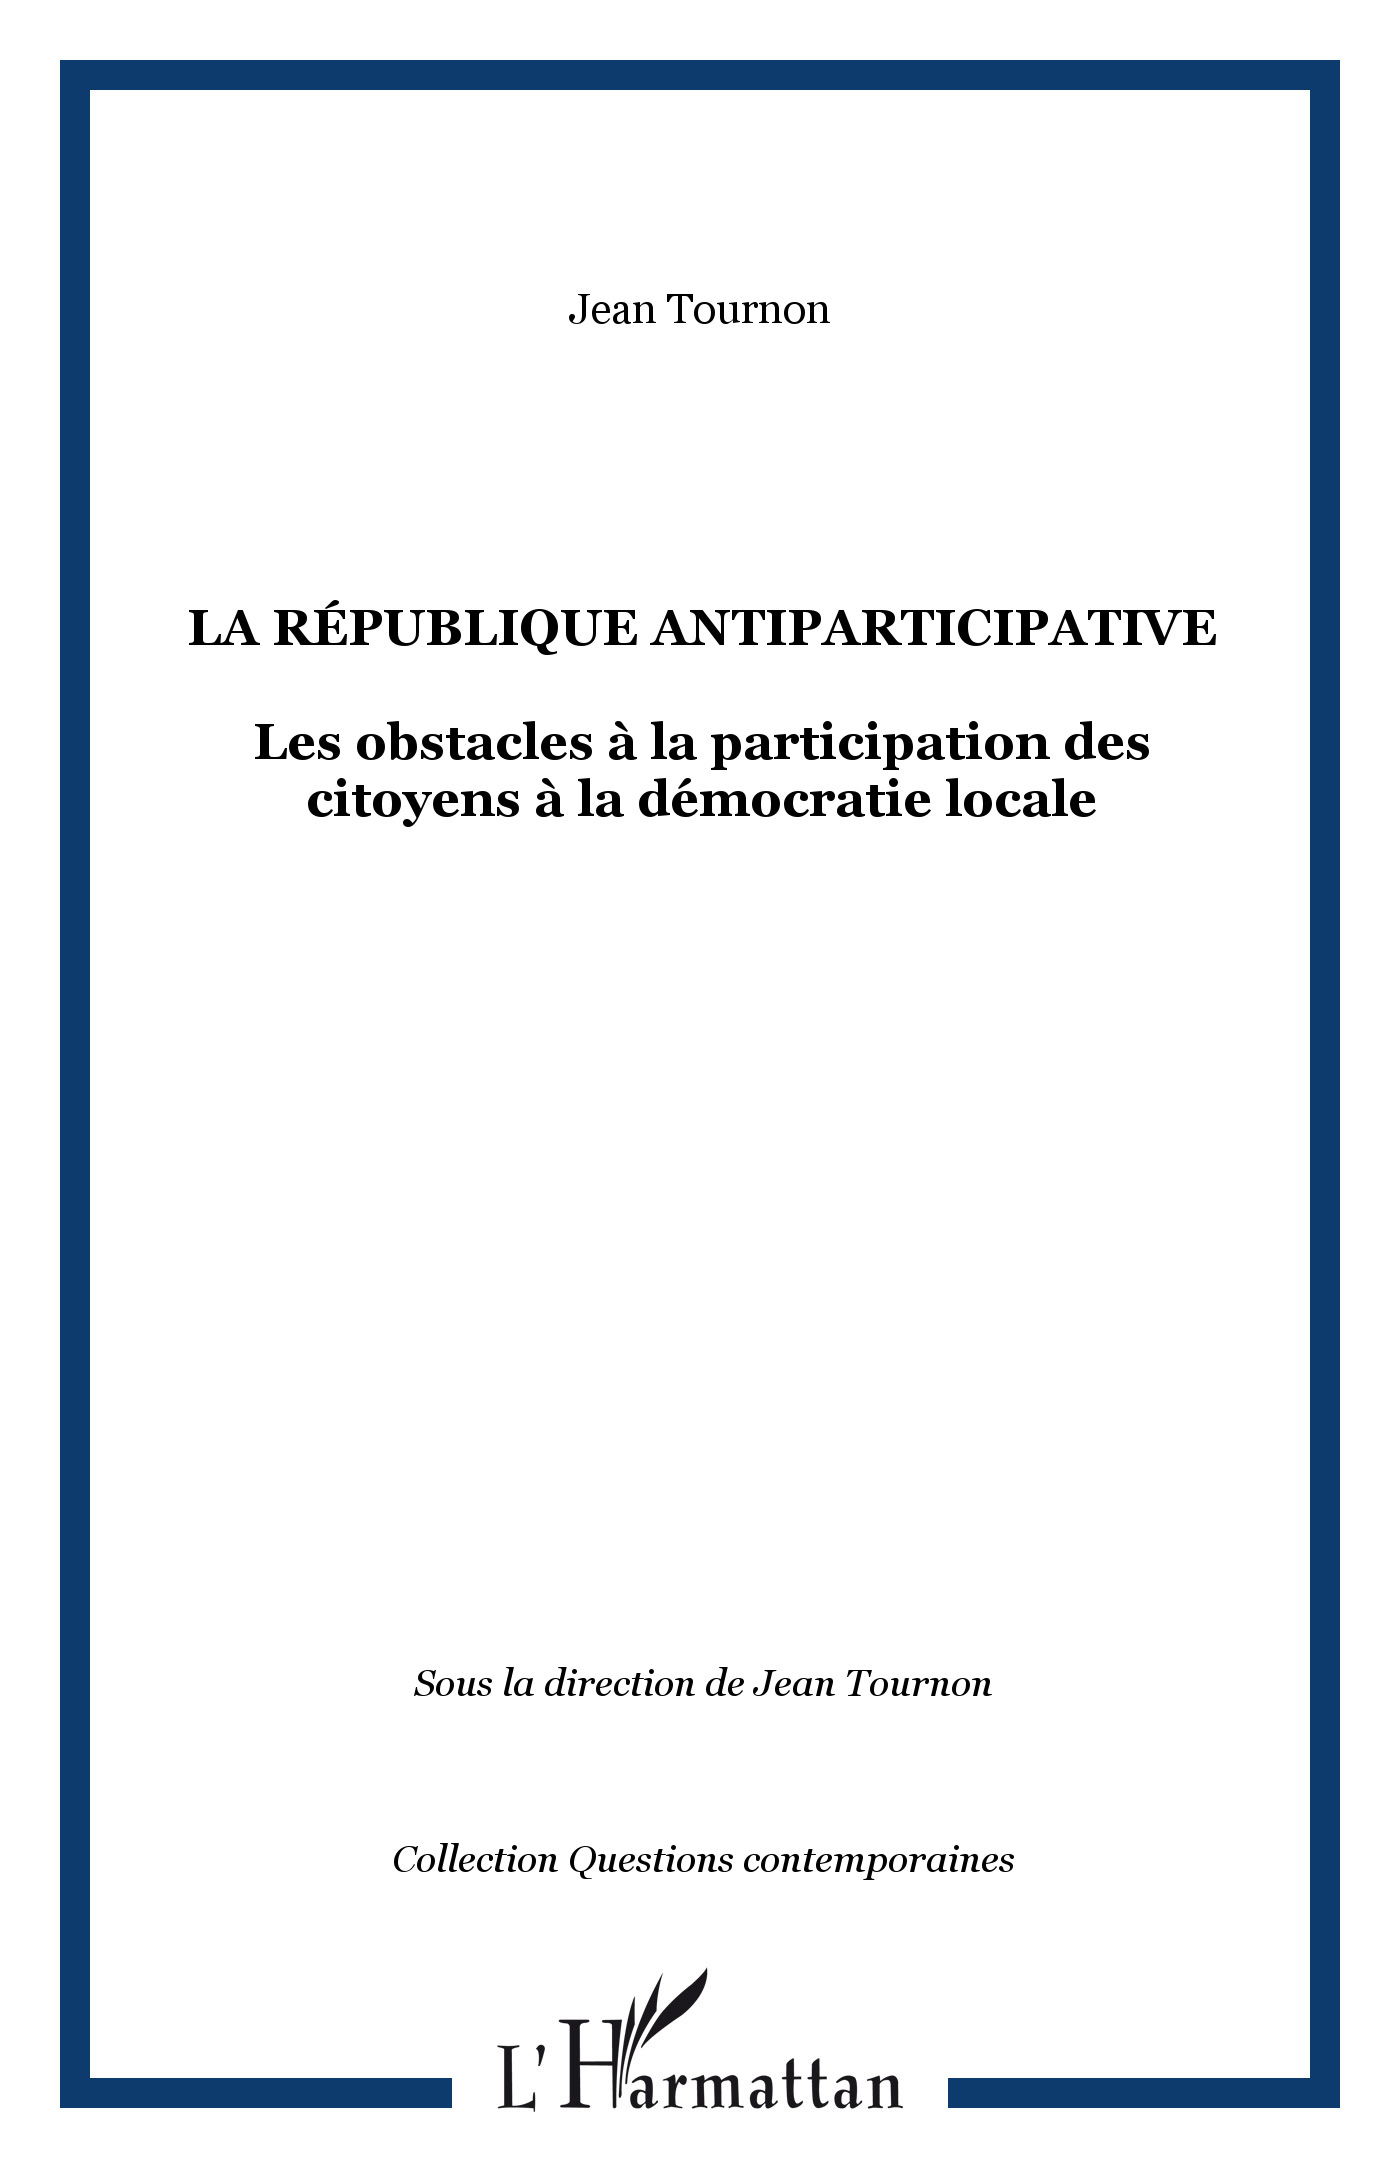 La République antiparticipative